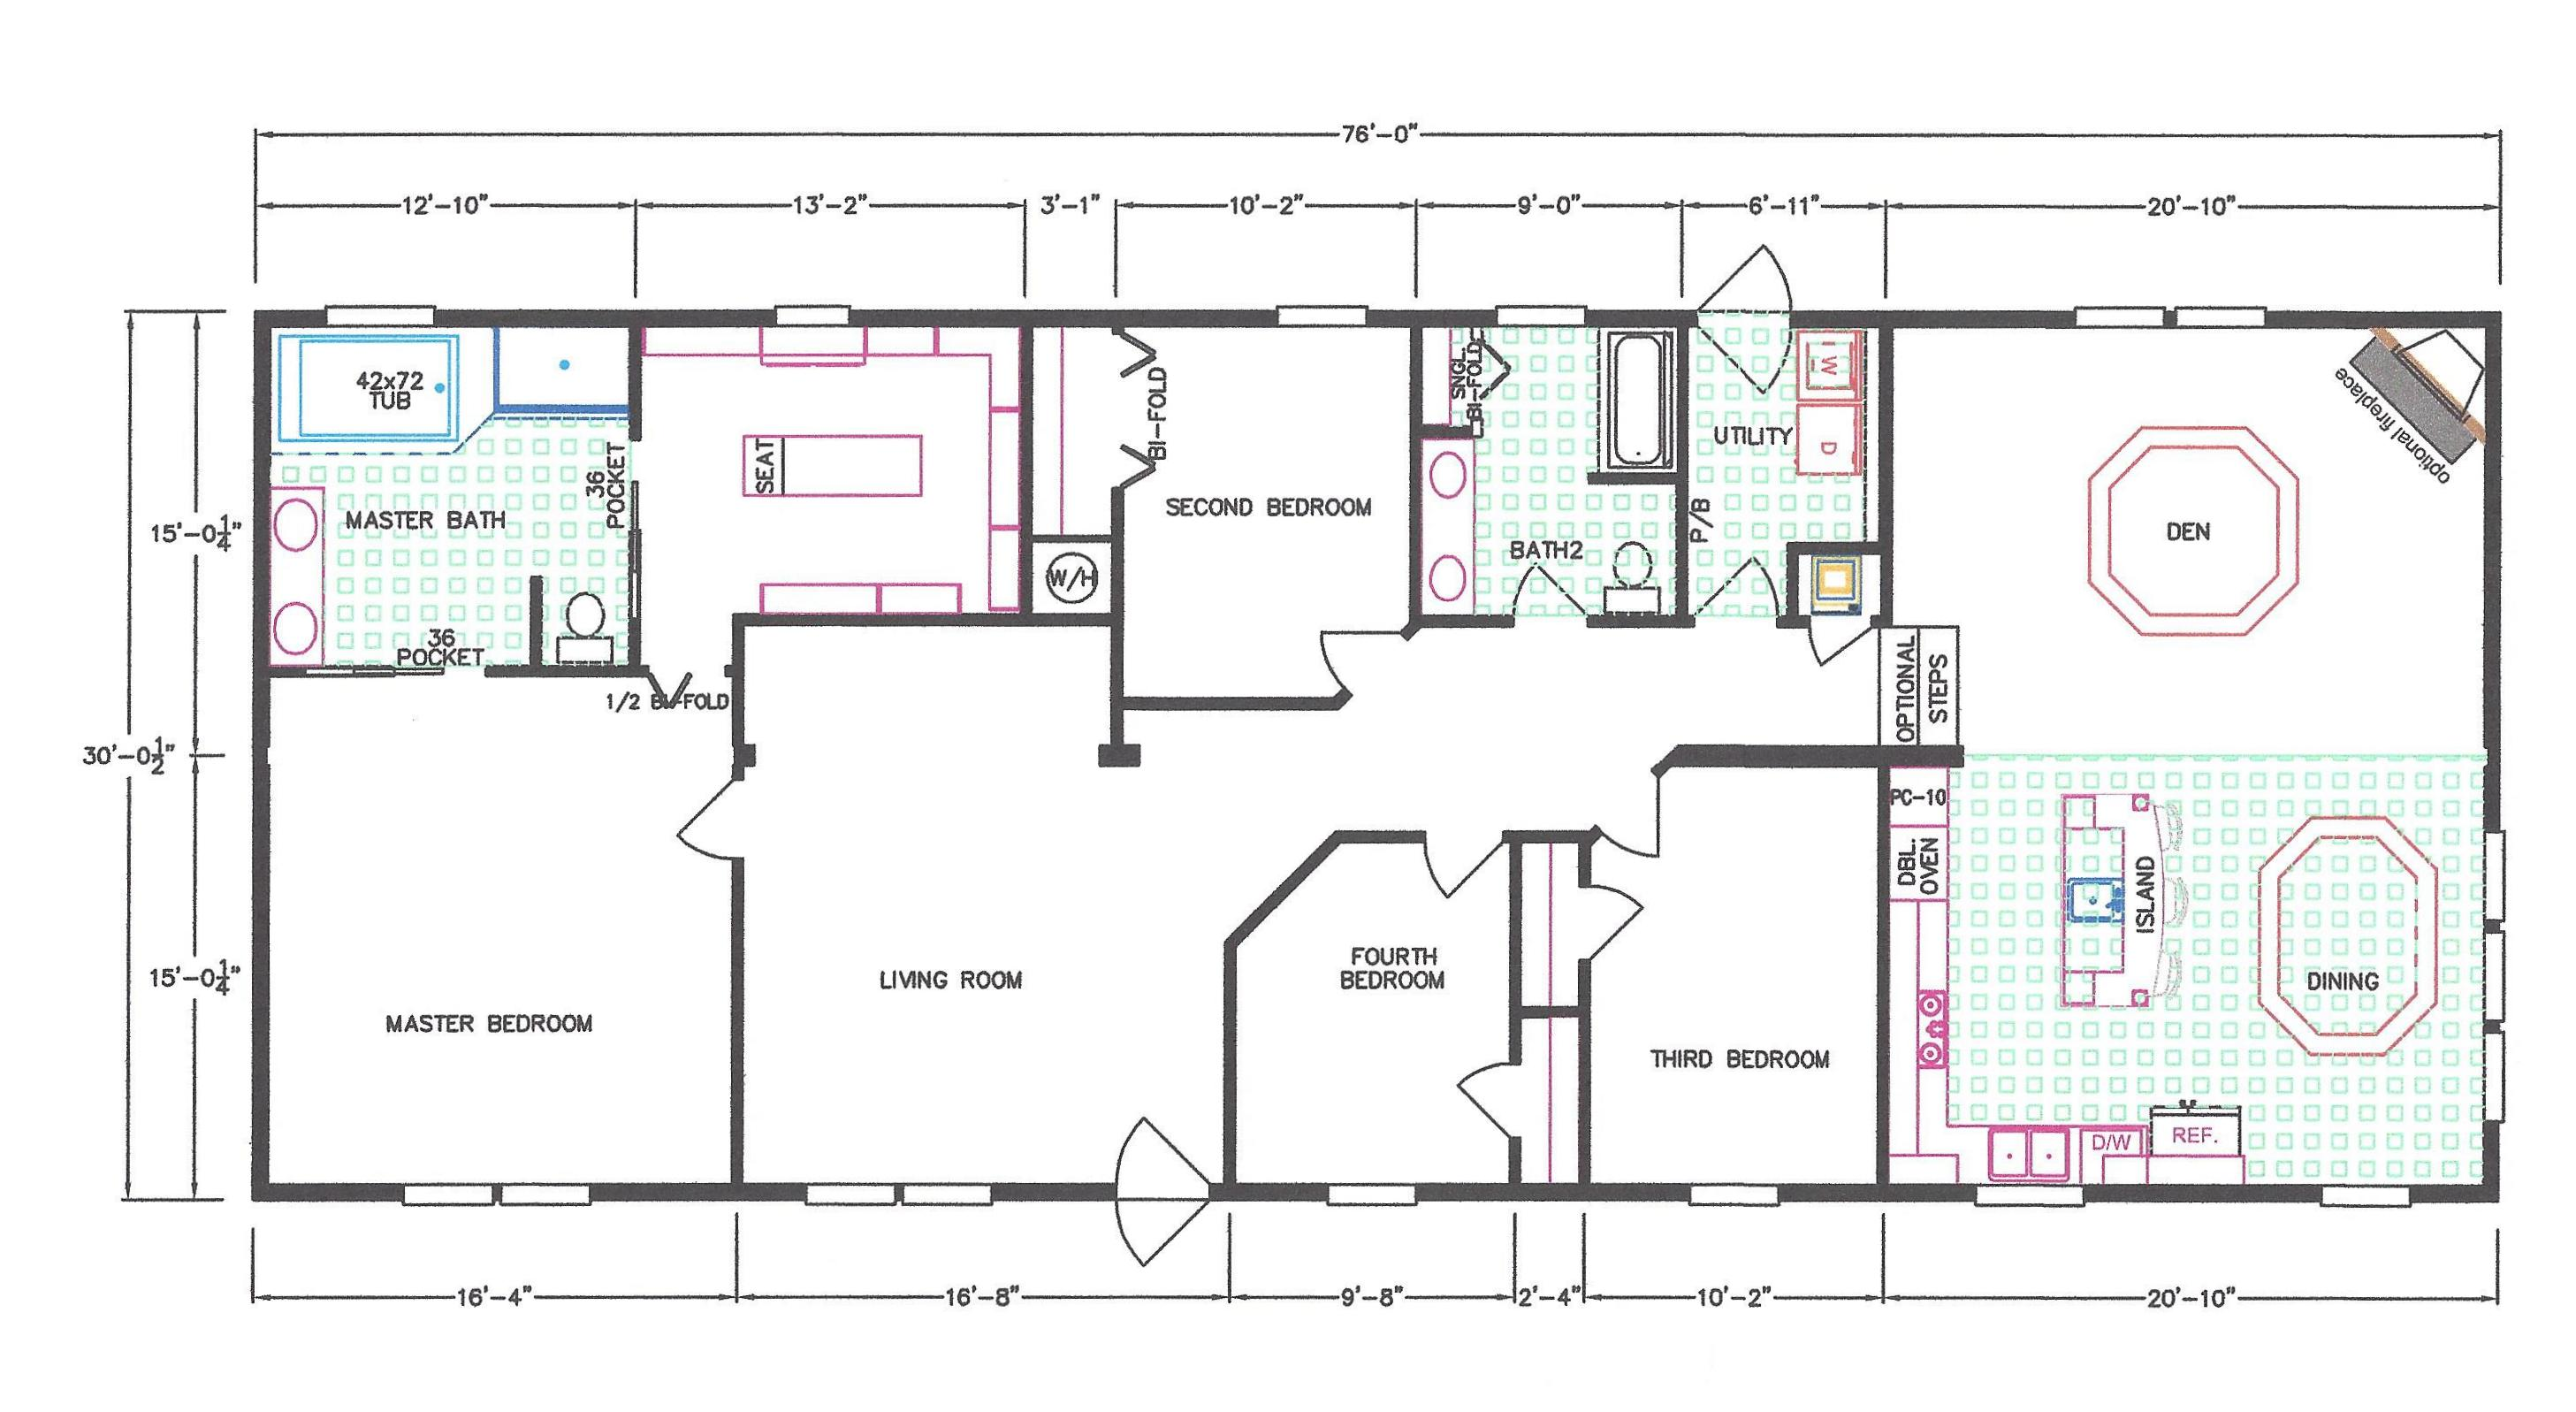 4 bedroom floor plan f 663 hawks homes manufactured for 4 bedroom mobile home floor plans